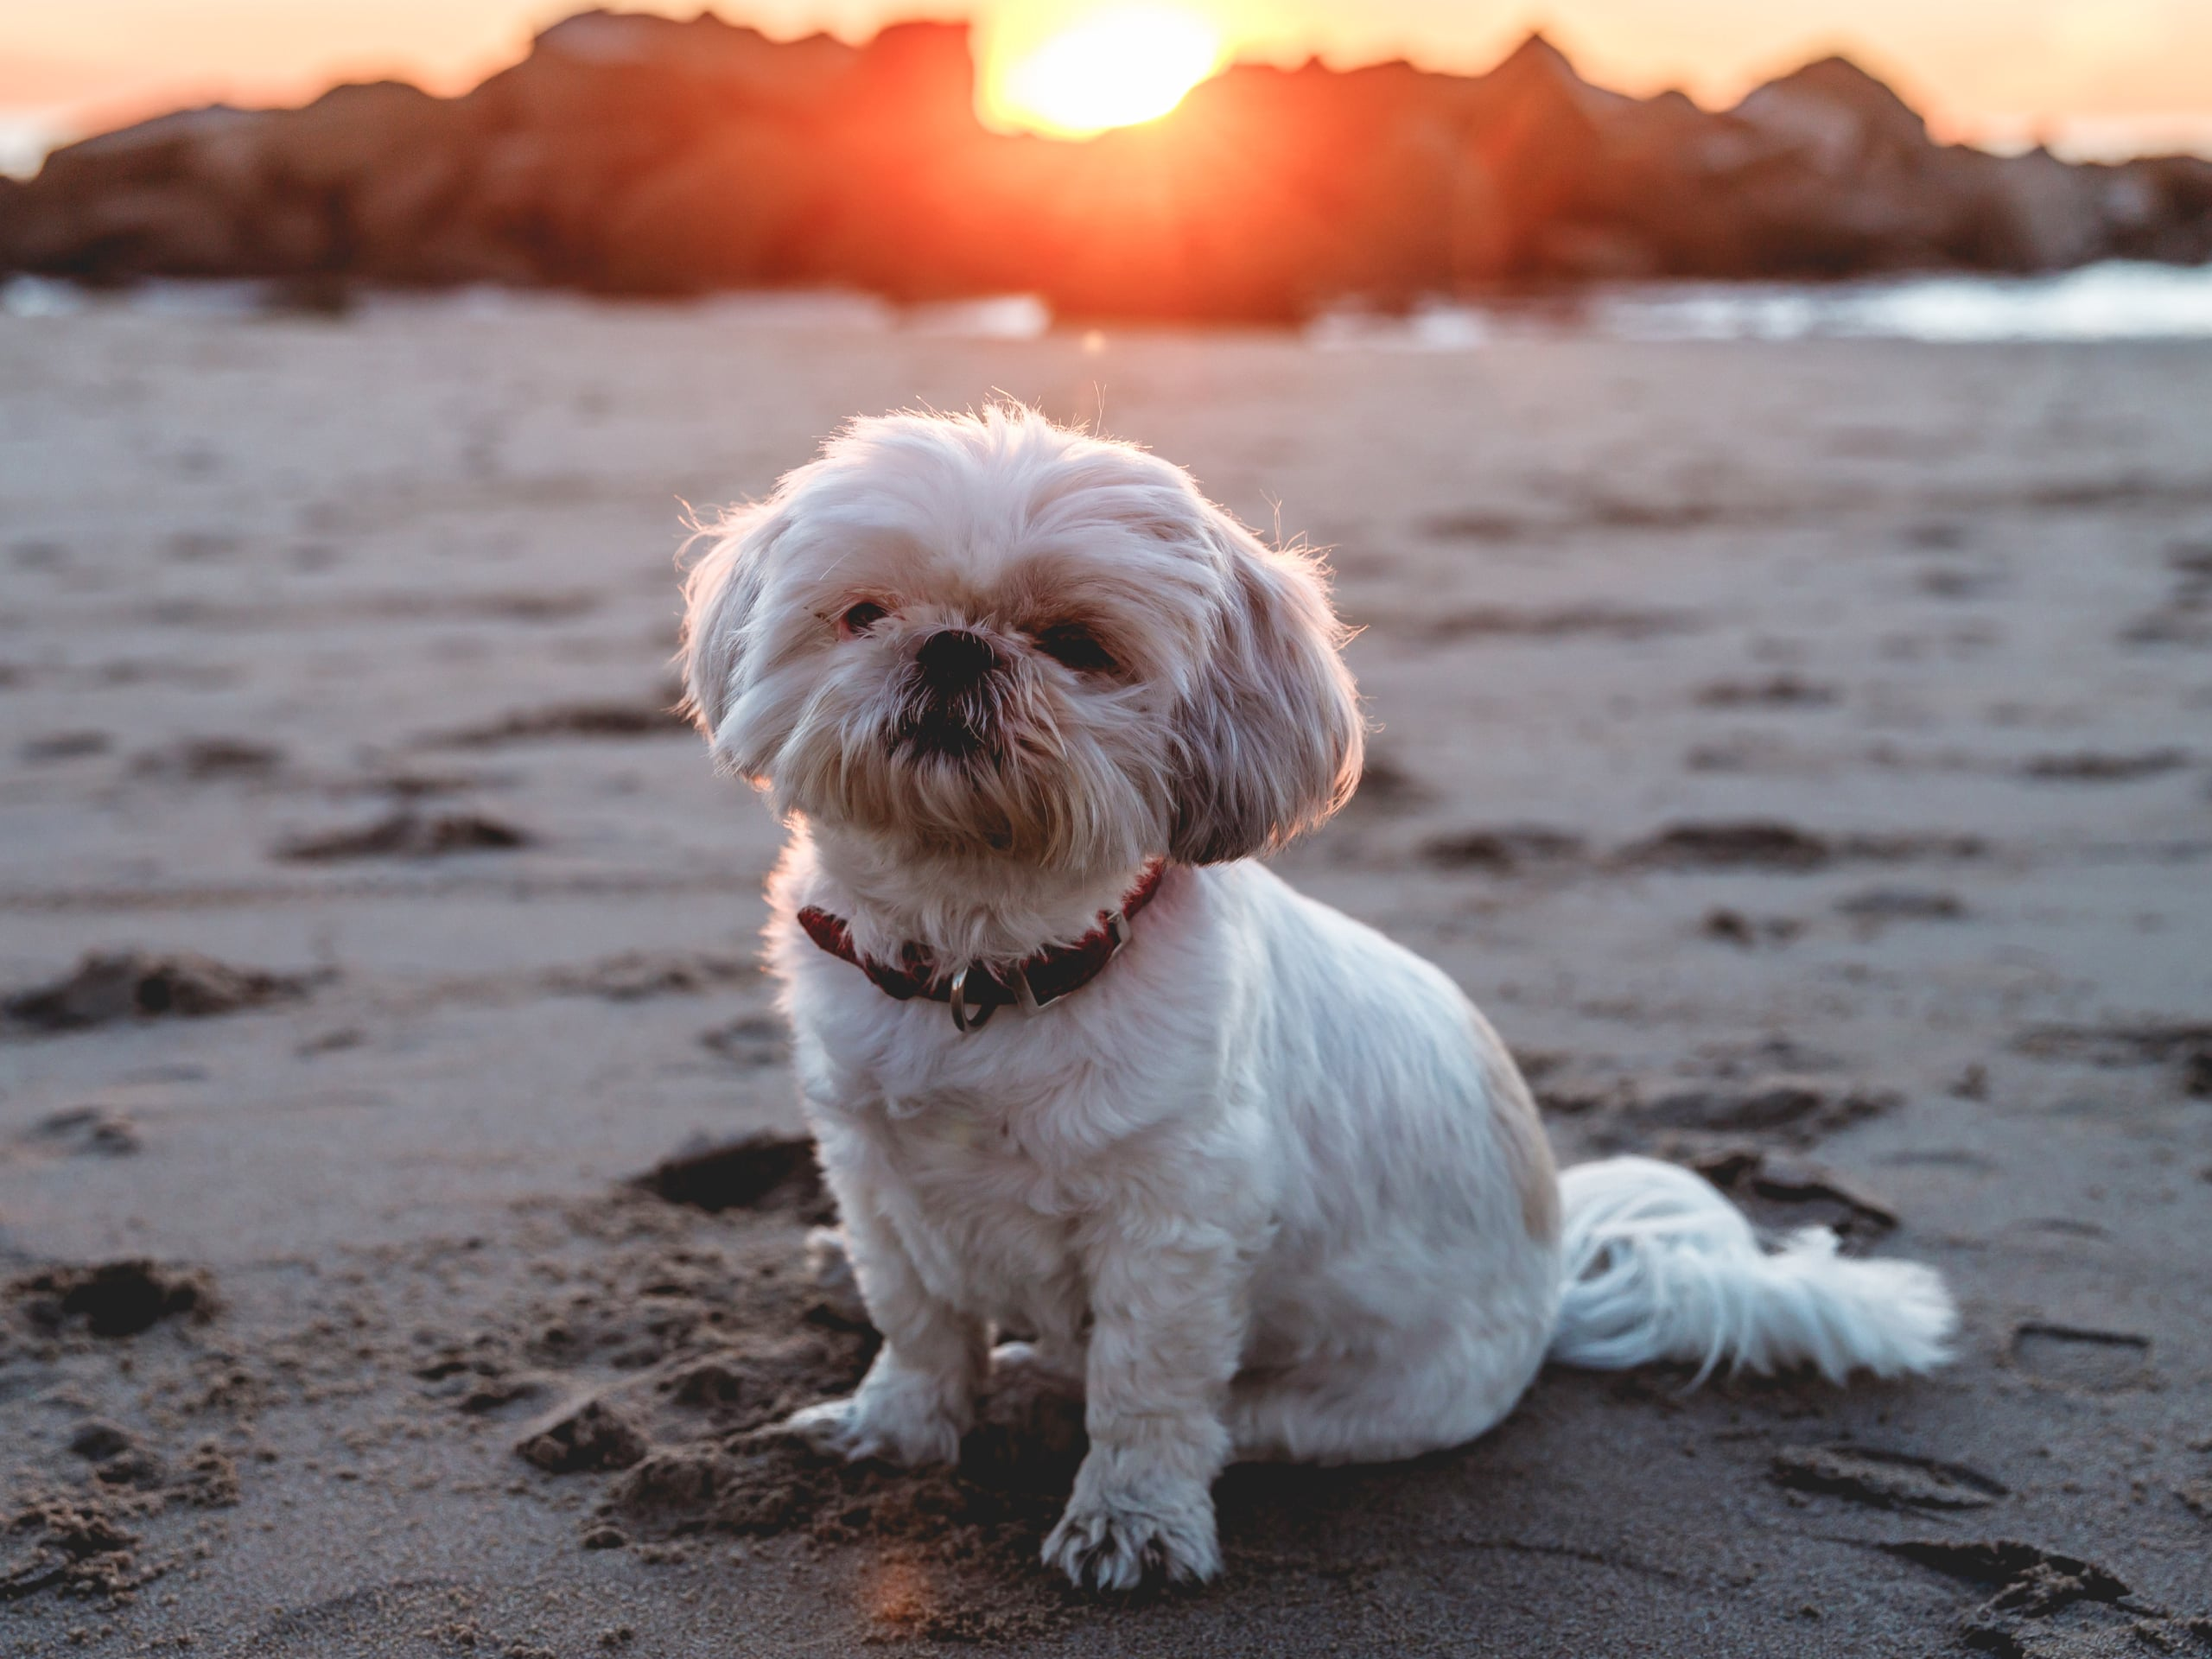 A vaccinated dog sitting on the beach during sunset